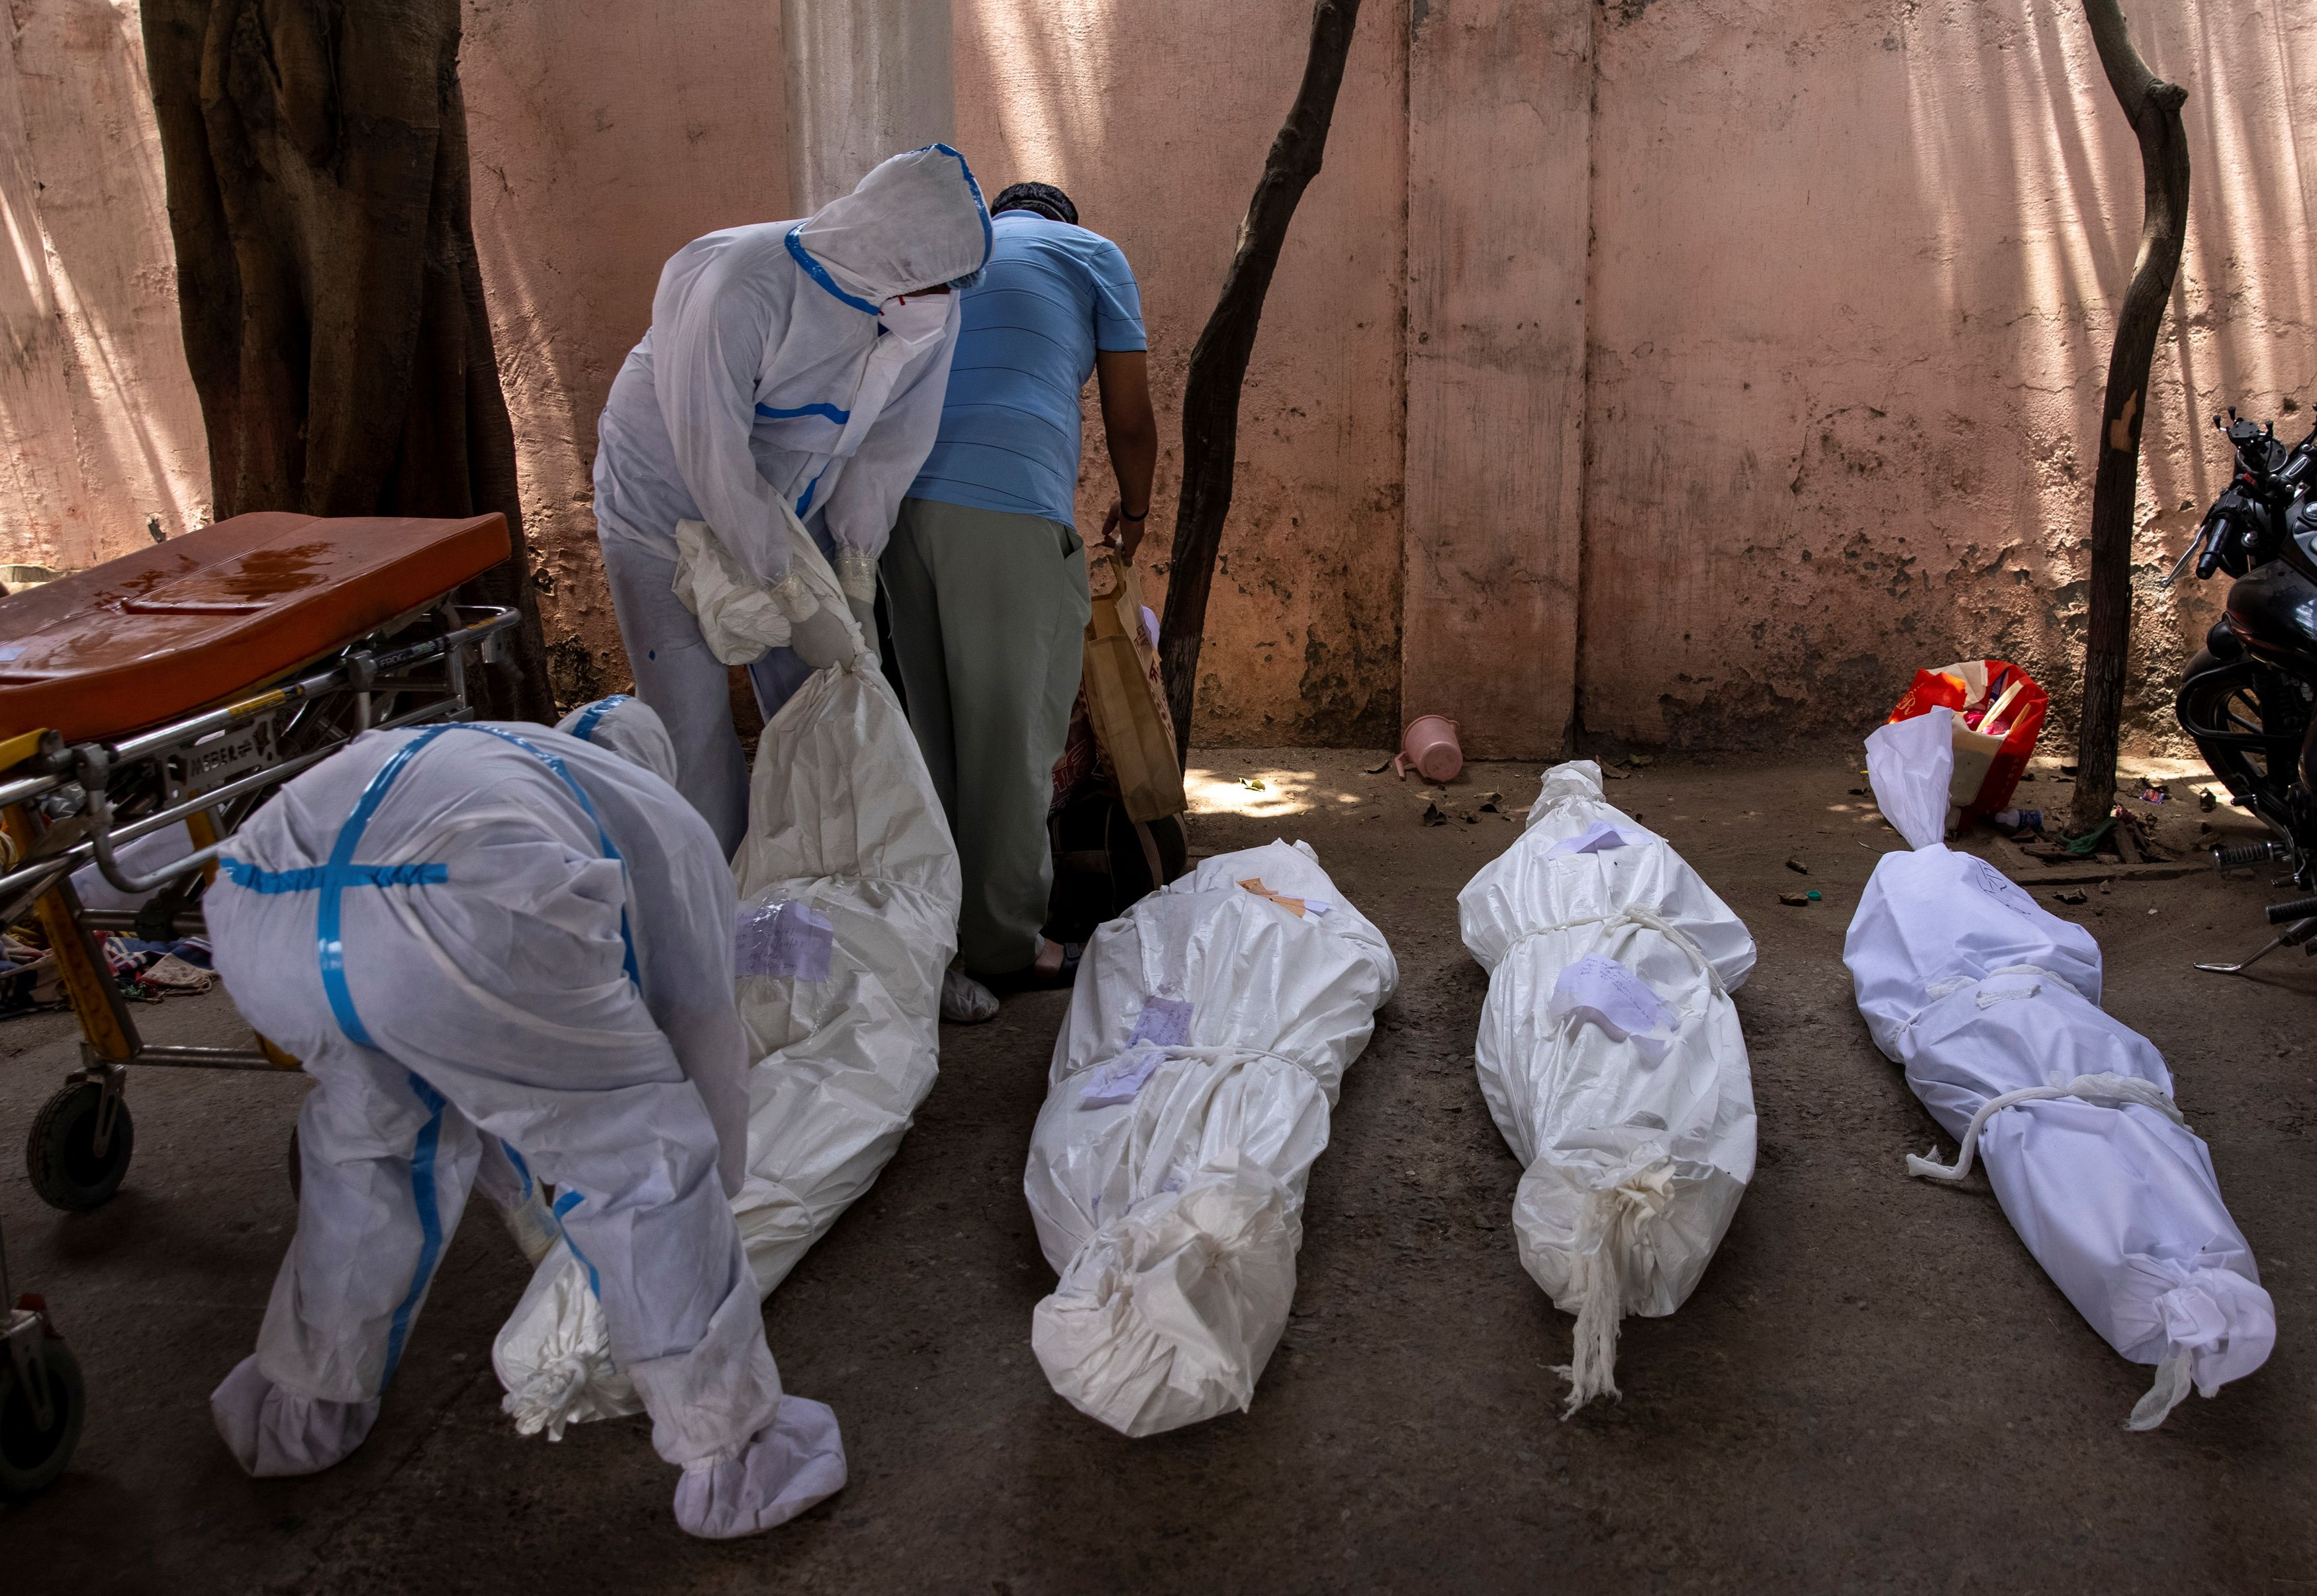 Healthcare workers place the body of a person, who died due to the coronavirus disease (COVID-19), on the ground for cremation at a crematorium ground in New Delhi, India, April 28, 2021. REUTERS/Danish Siddiqui